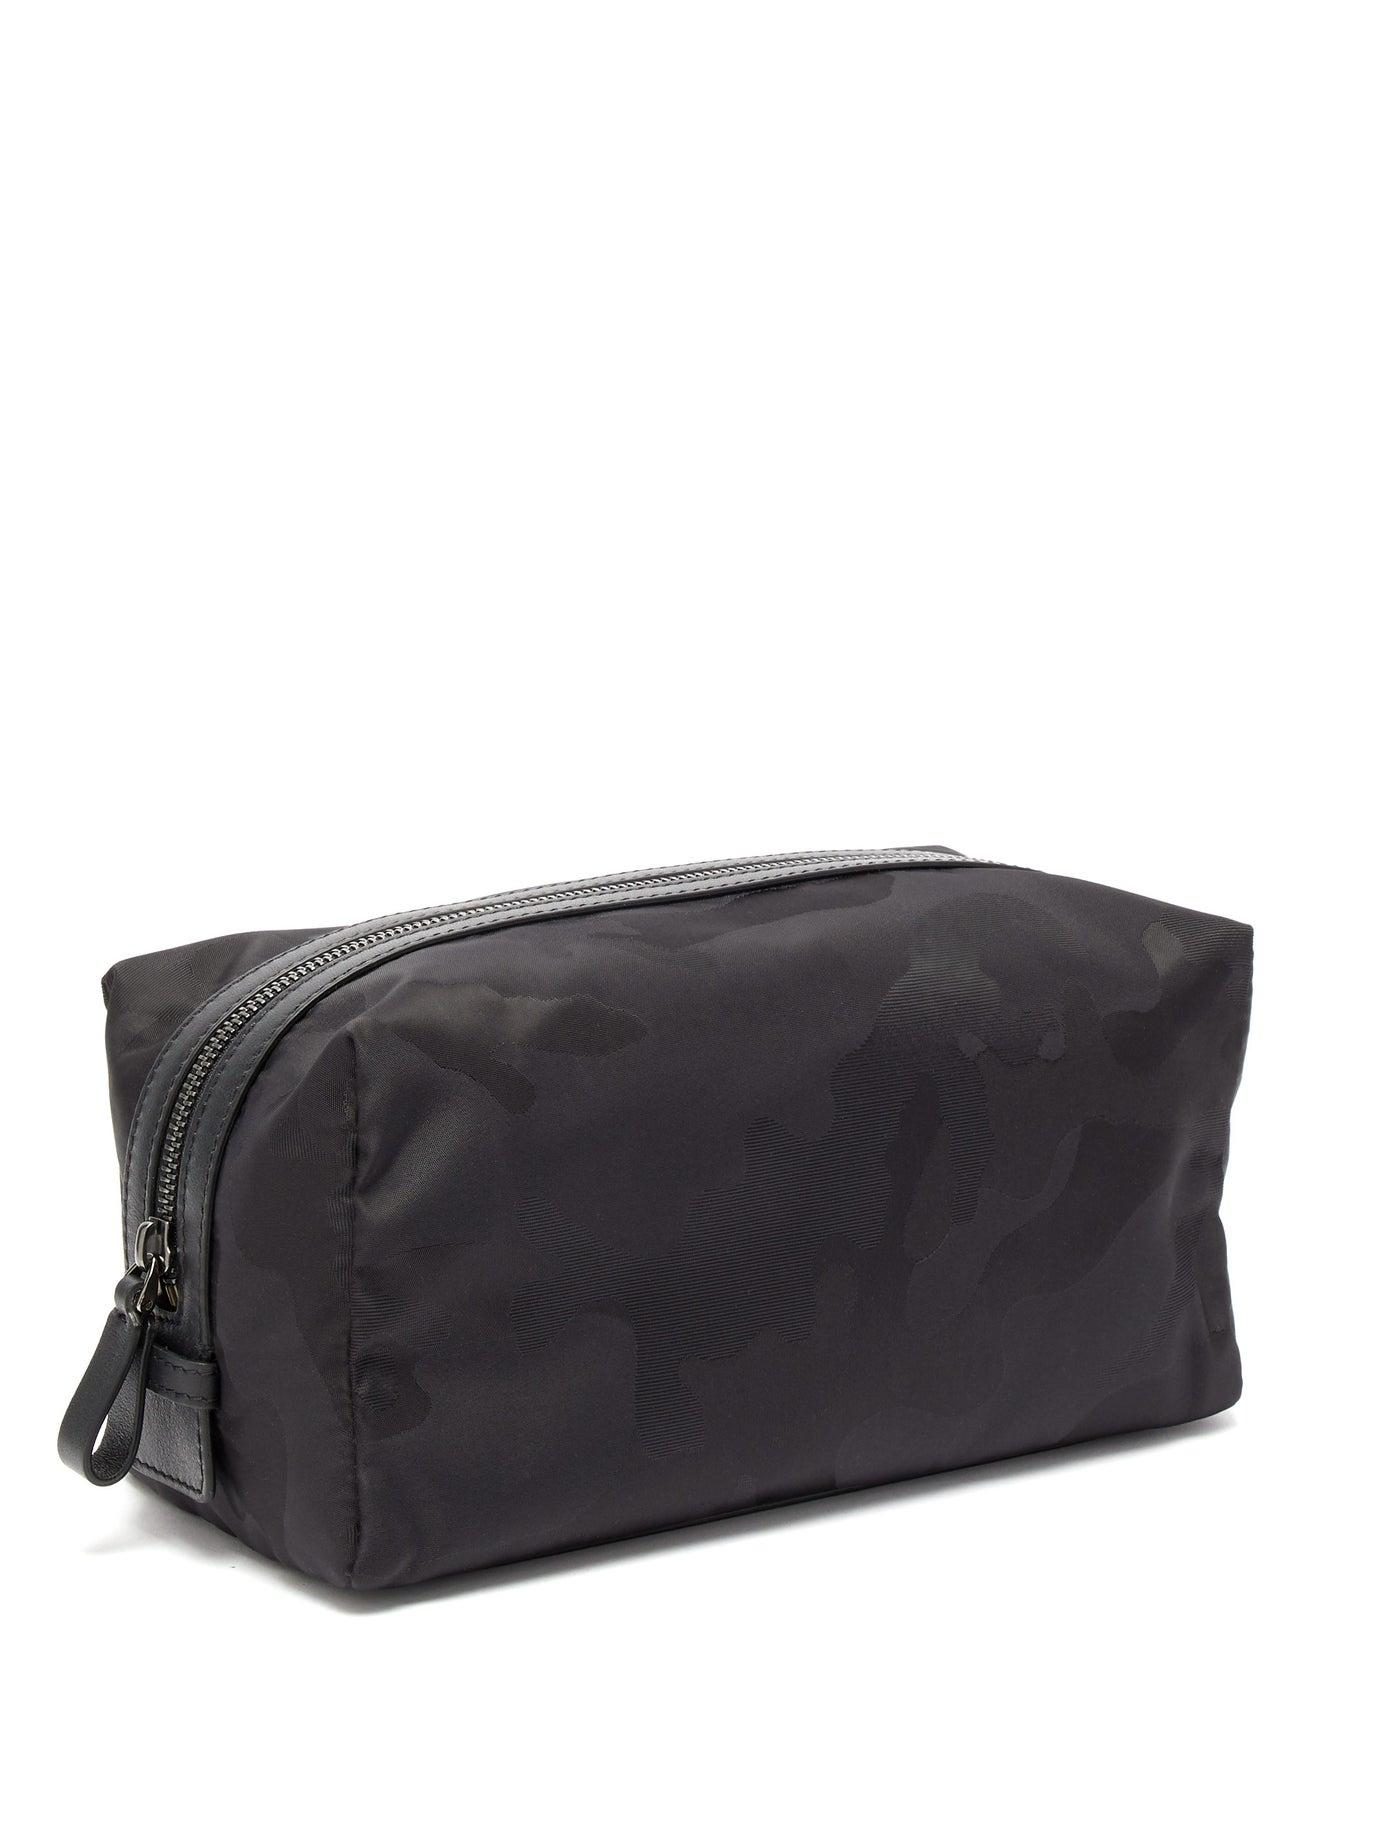 b69fe1bbe36 Valentino Camouflage Jacquard Wash Bag in Black for Men - Lyst